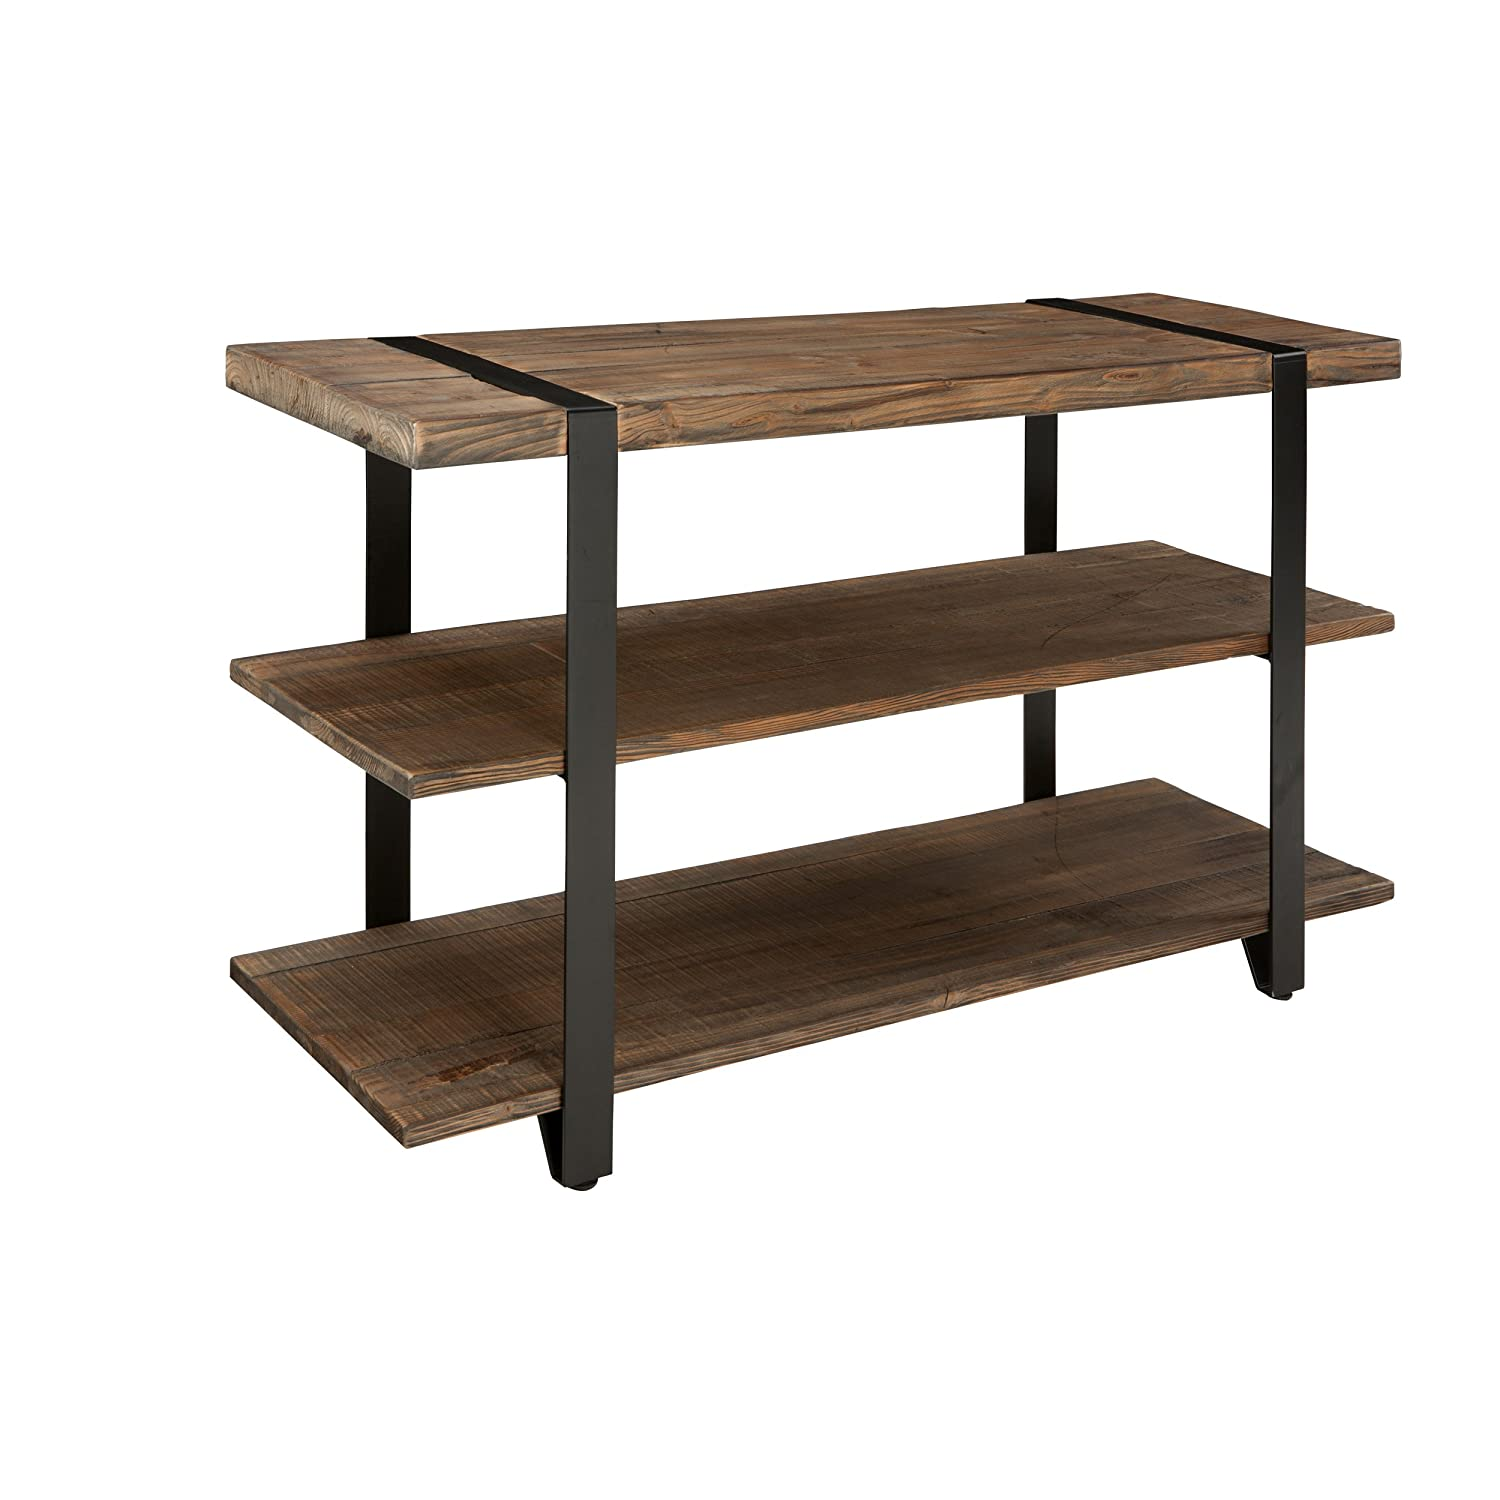 Alaterre Stowe 48 L Reclaimed Wood Media Console Table, Natural